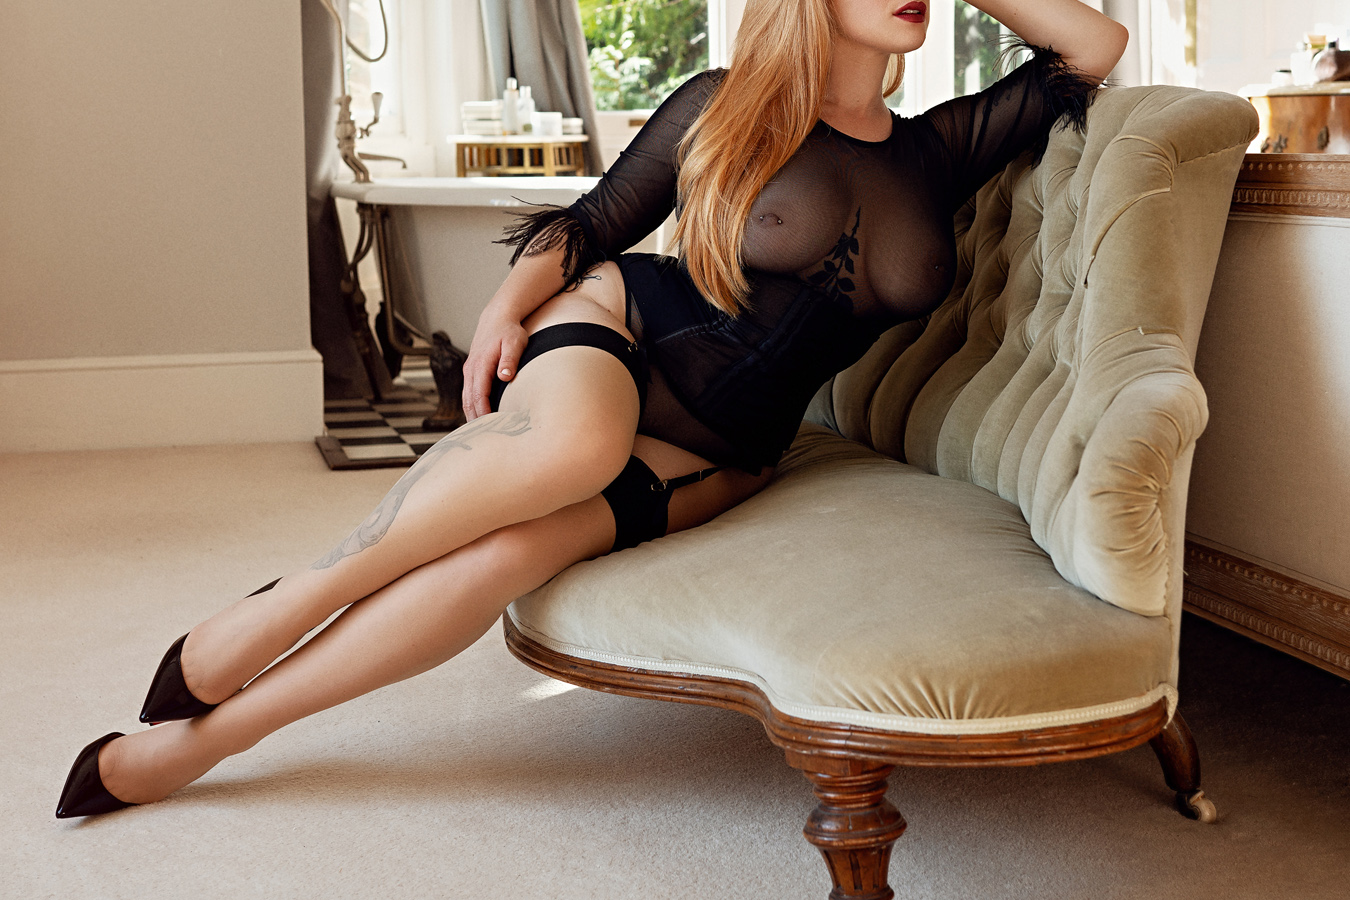 Experience intense sensations with an erotic massage